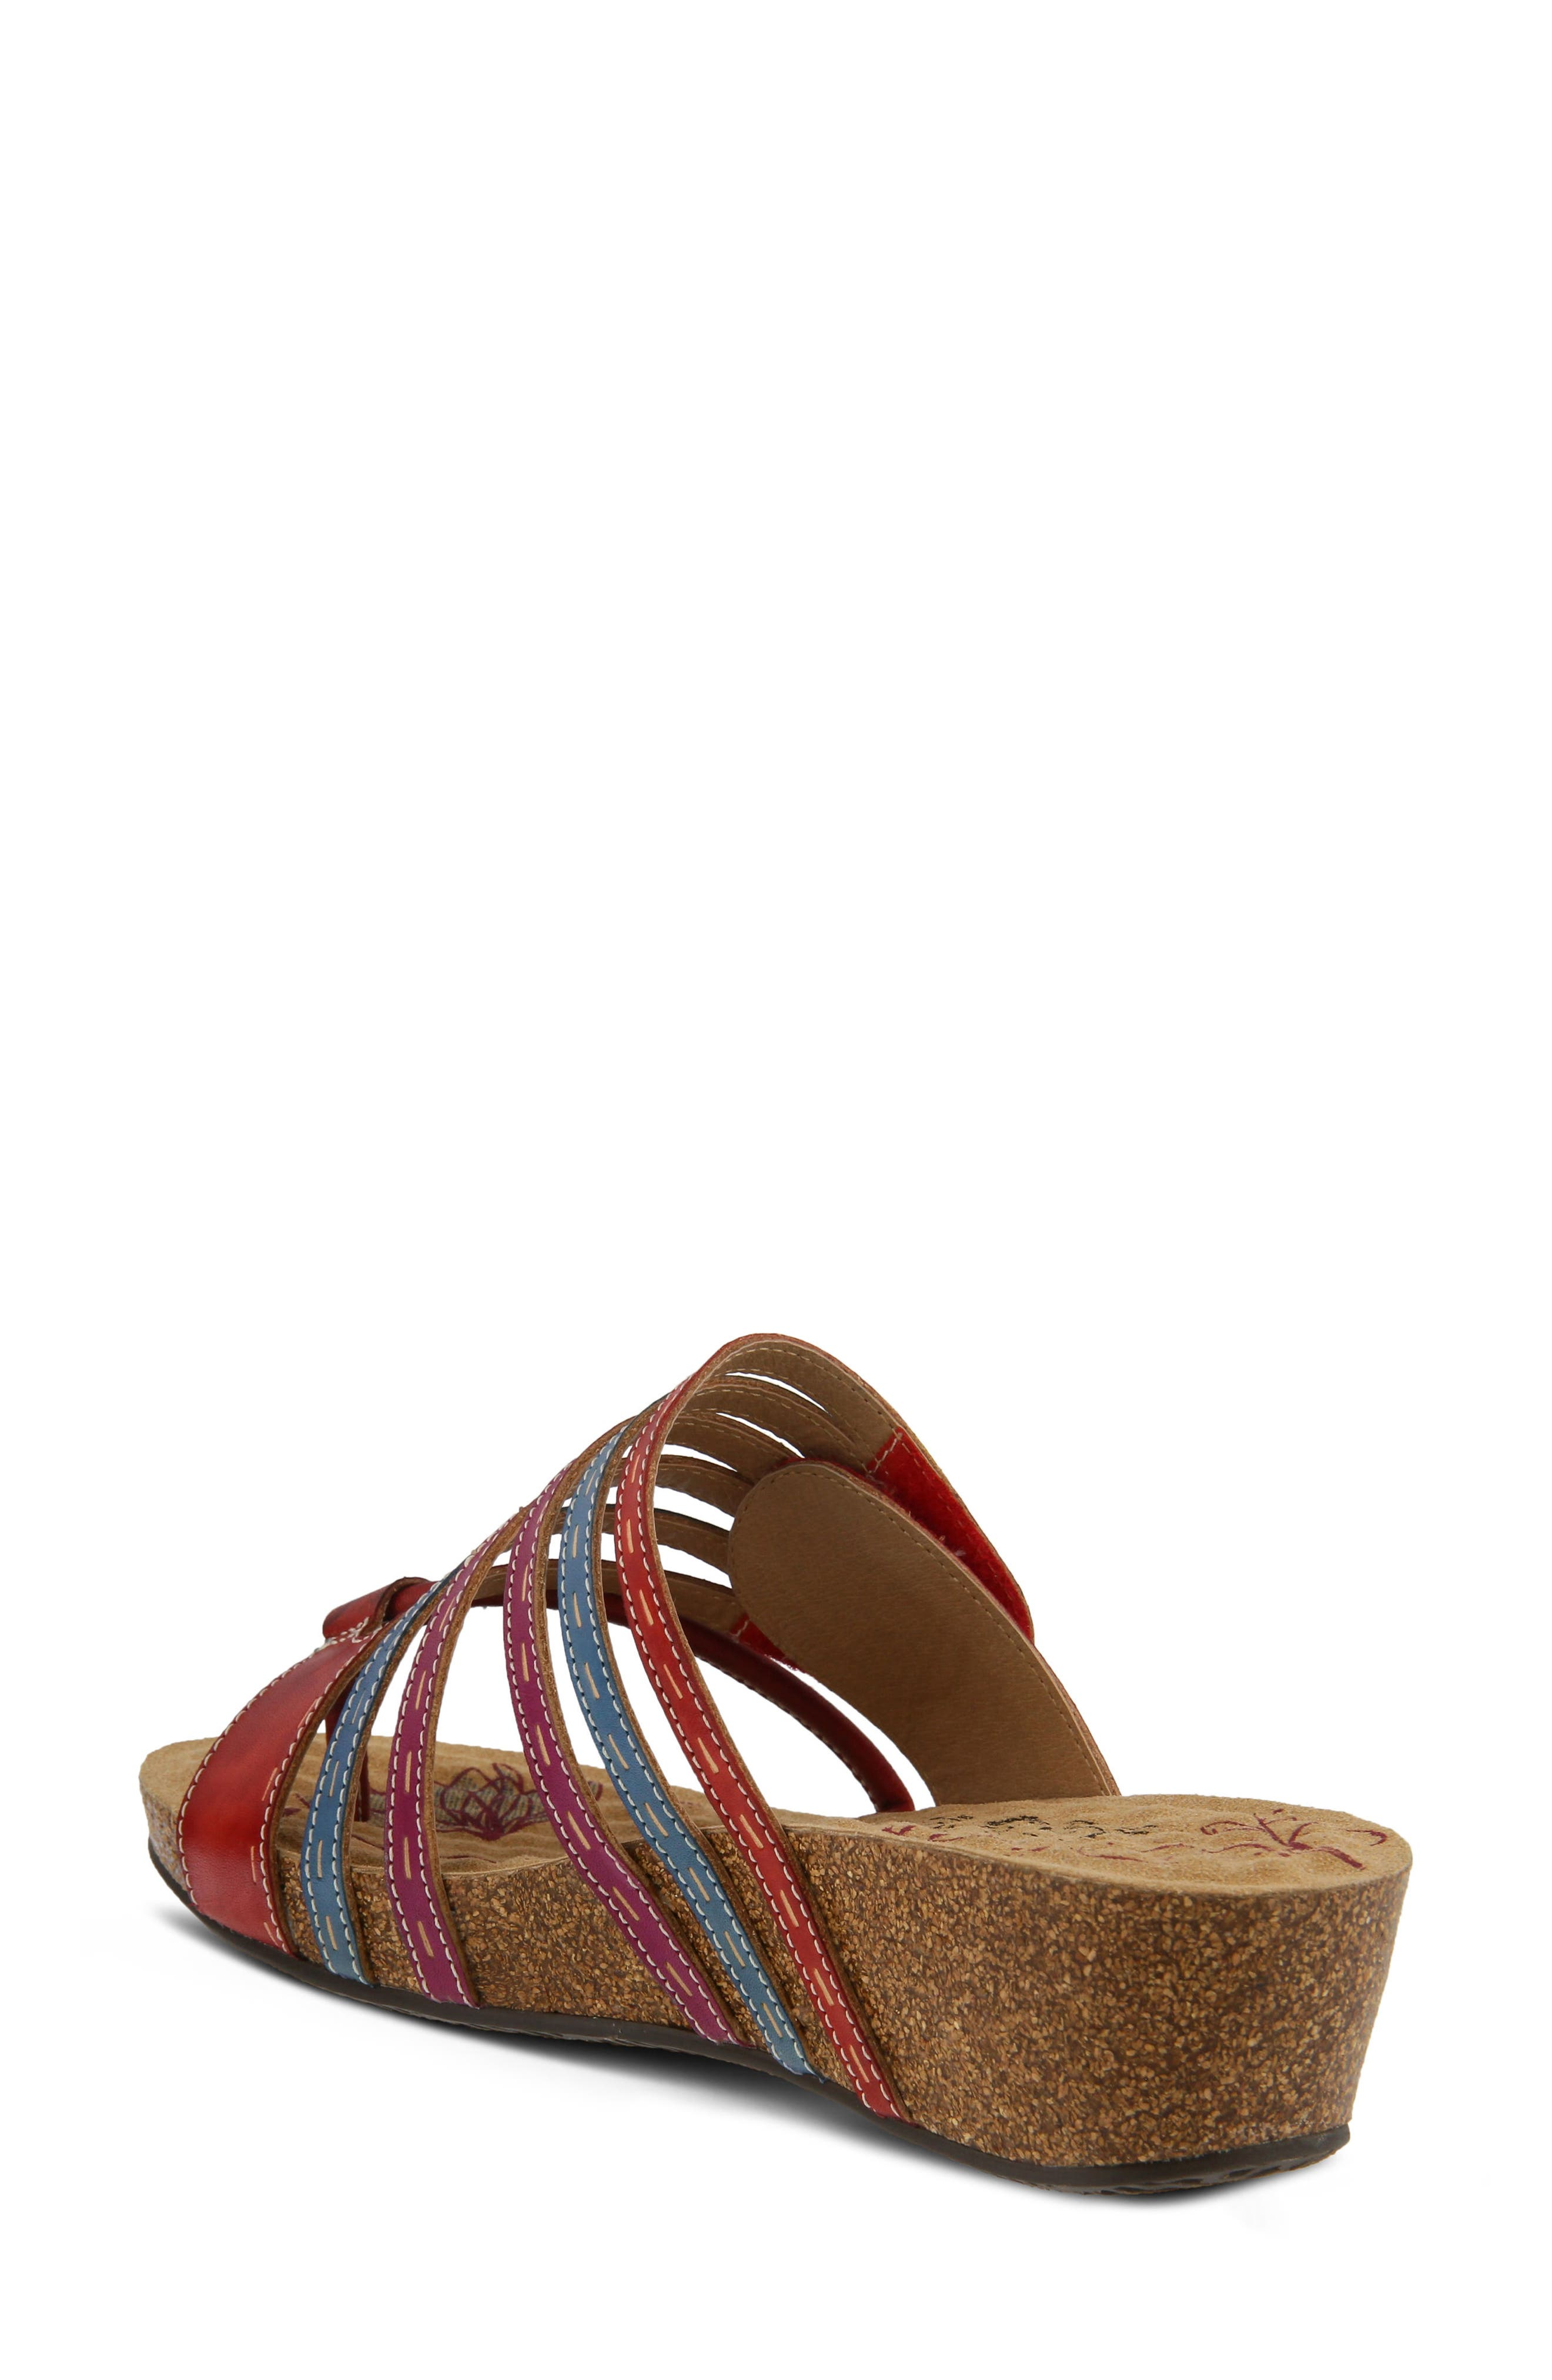 L'Artiste Claudia Wedge Sandal,                             Alternate thumbnail 2, color,                             Red Leather